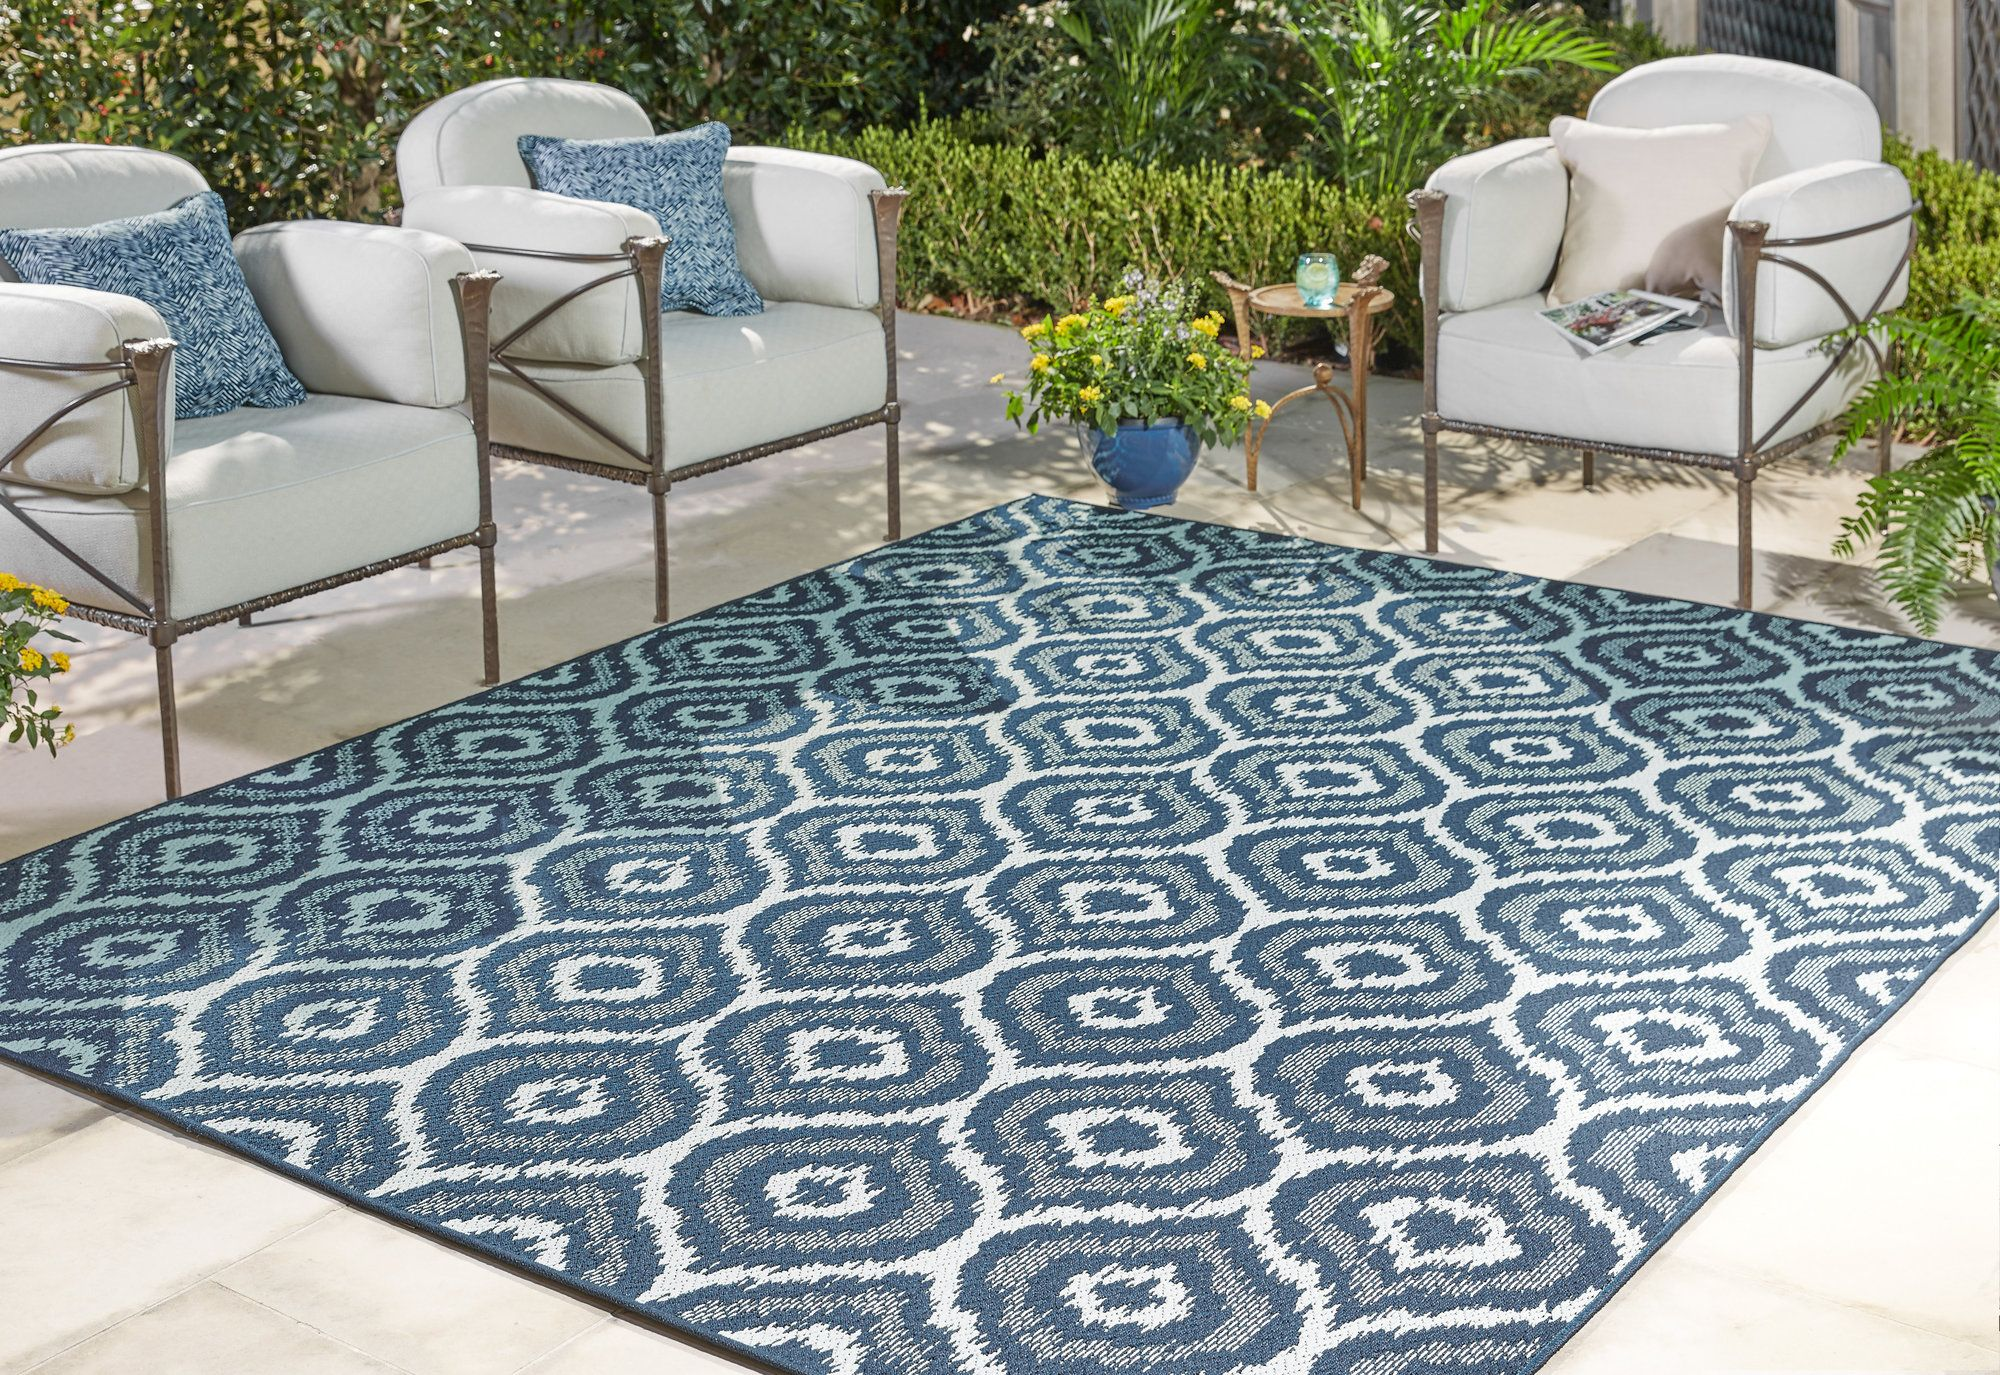 Aker Black Indooroutdoor Area Rug